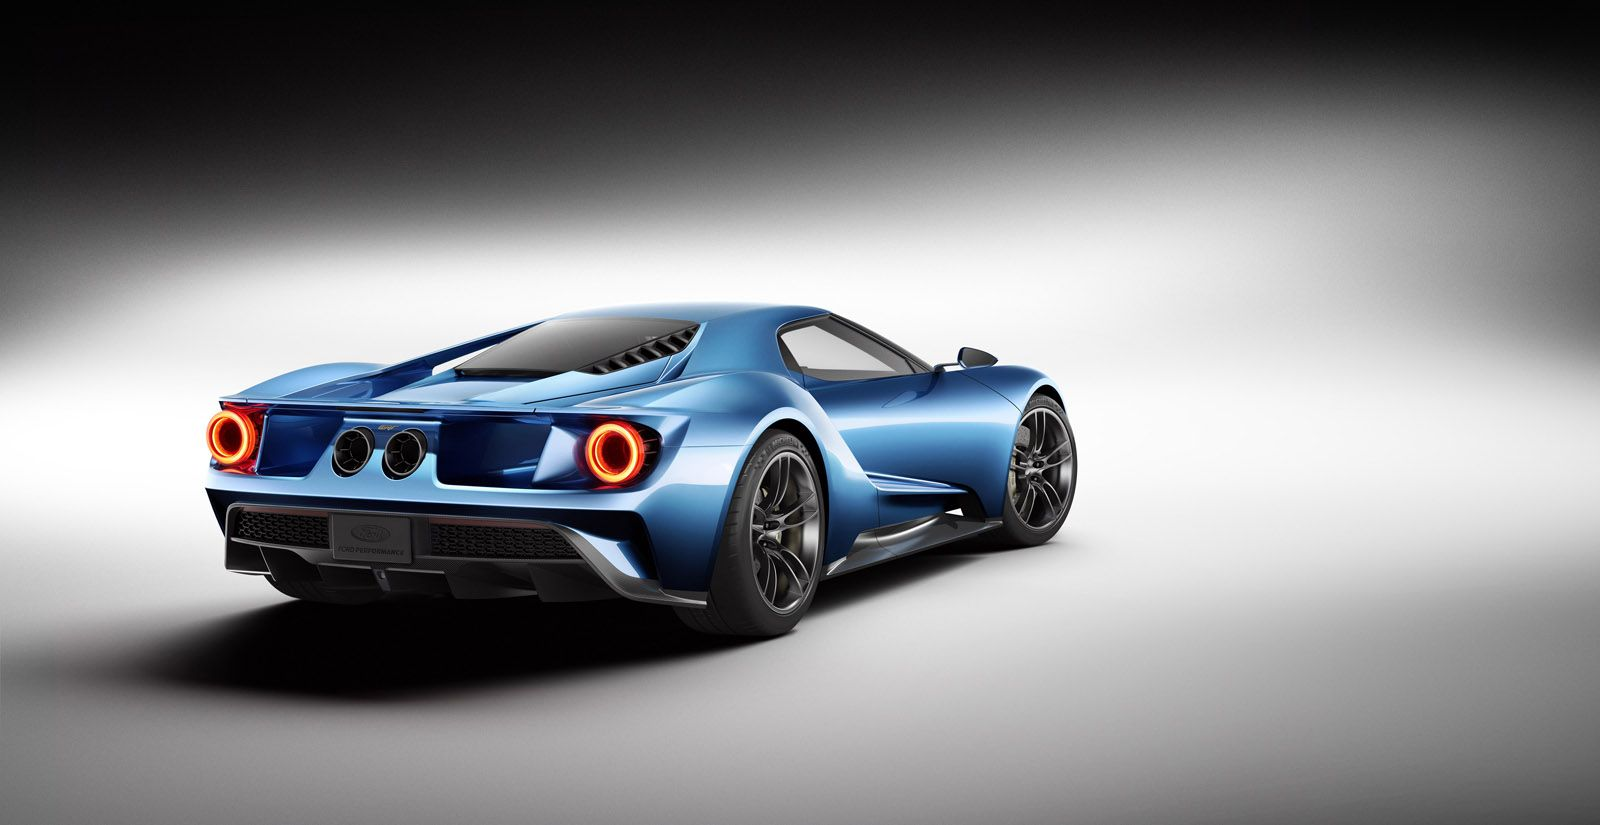 This Is The All New Ford Gt Car Fanatics Blog Ford Gt Ford Sports Cars Super Cars